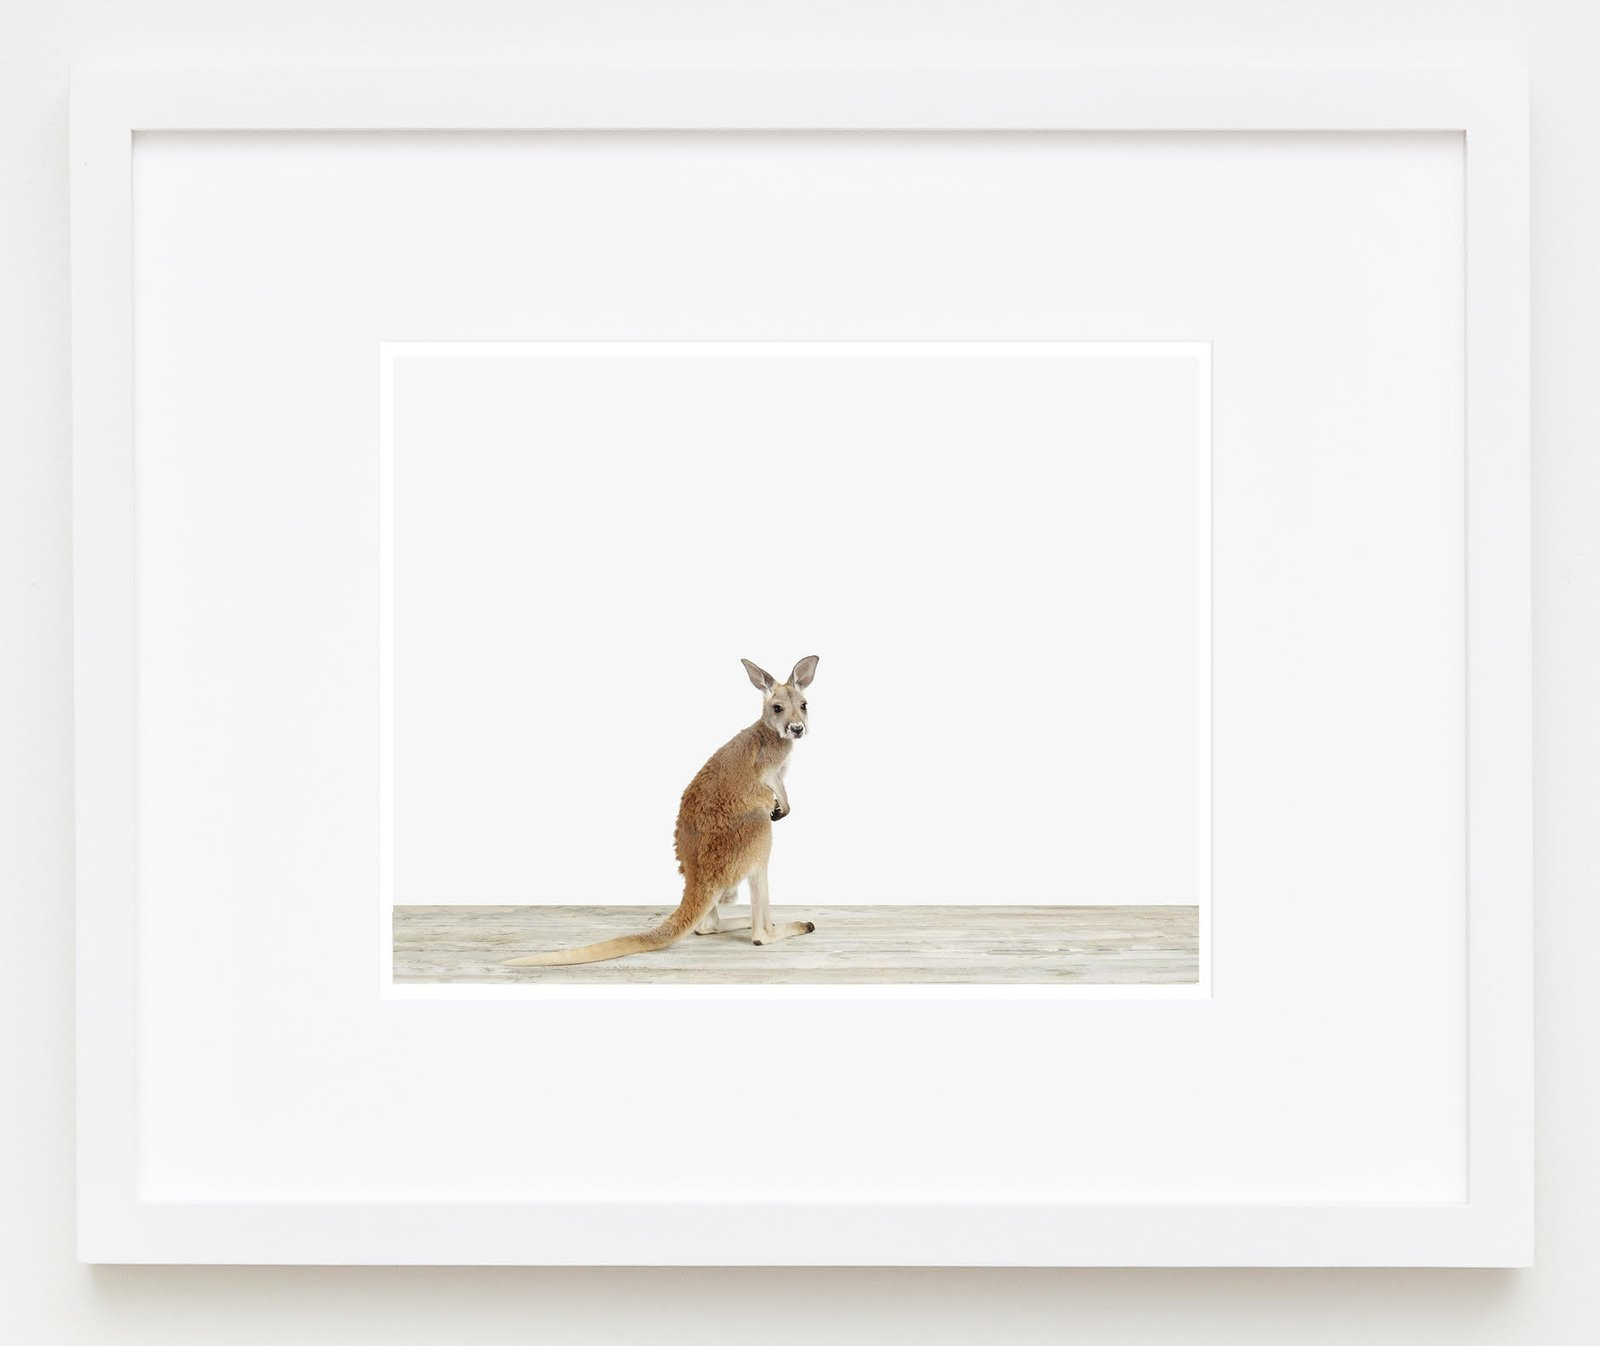 Photo 2 of 13 in 12 Playful Pieces of Art to Instantly Liven Up Your Kid's Room